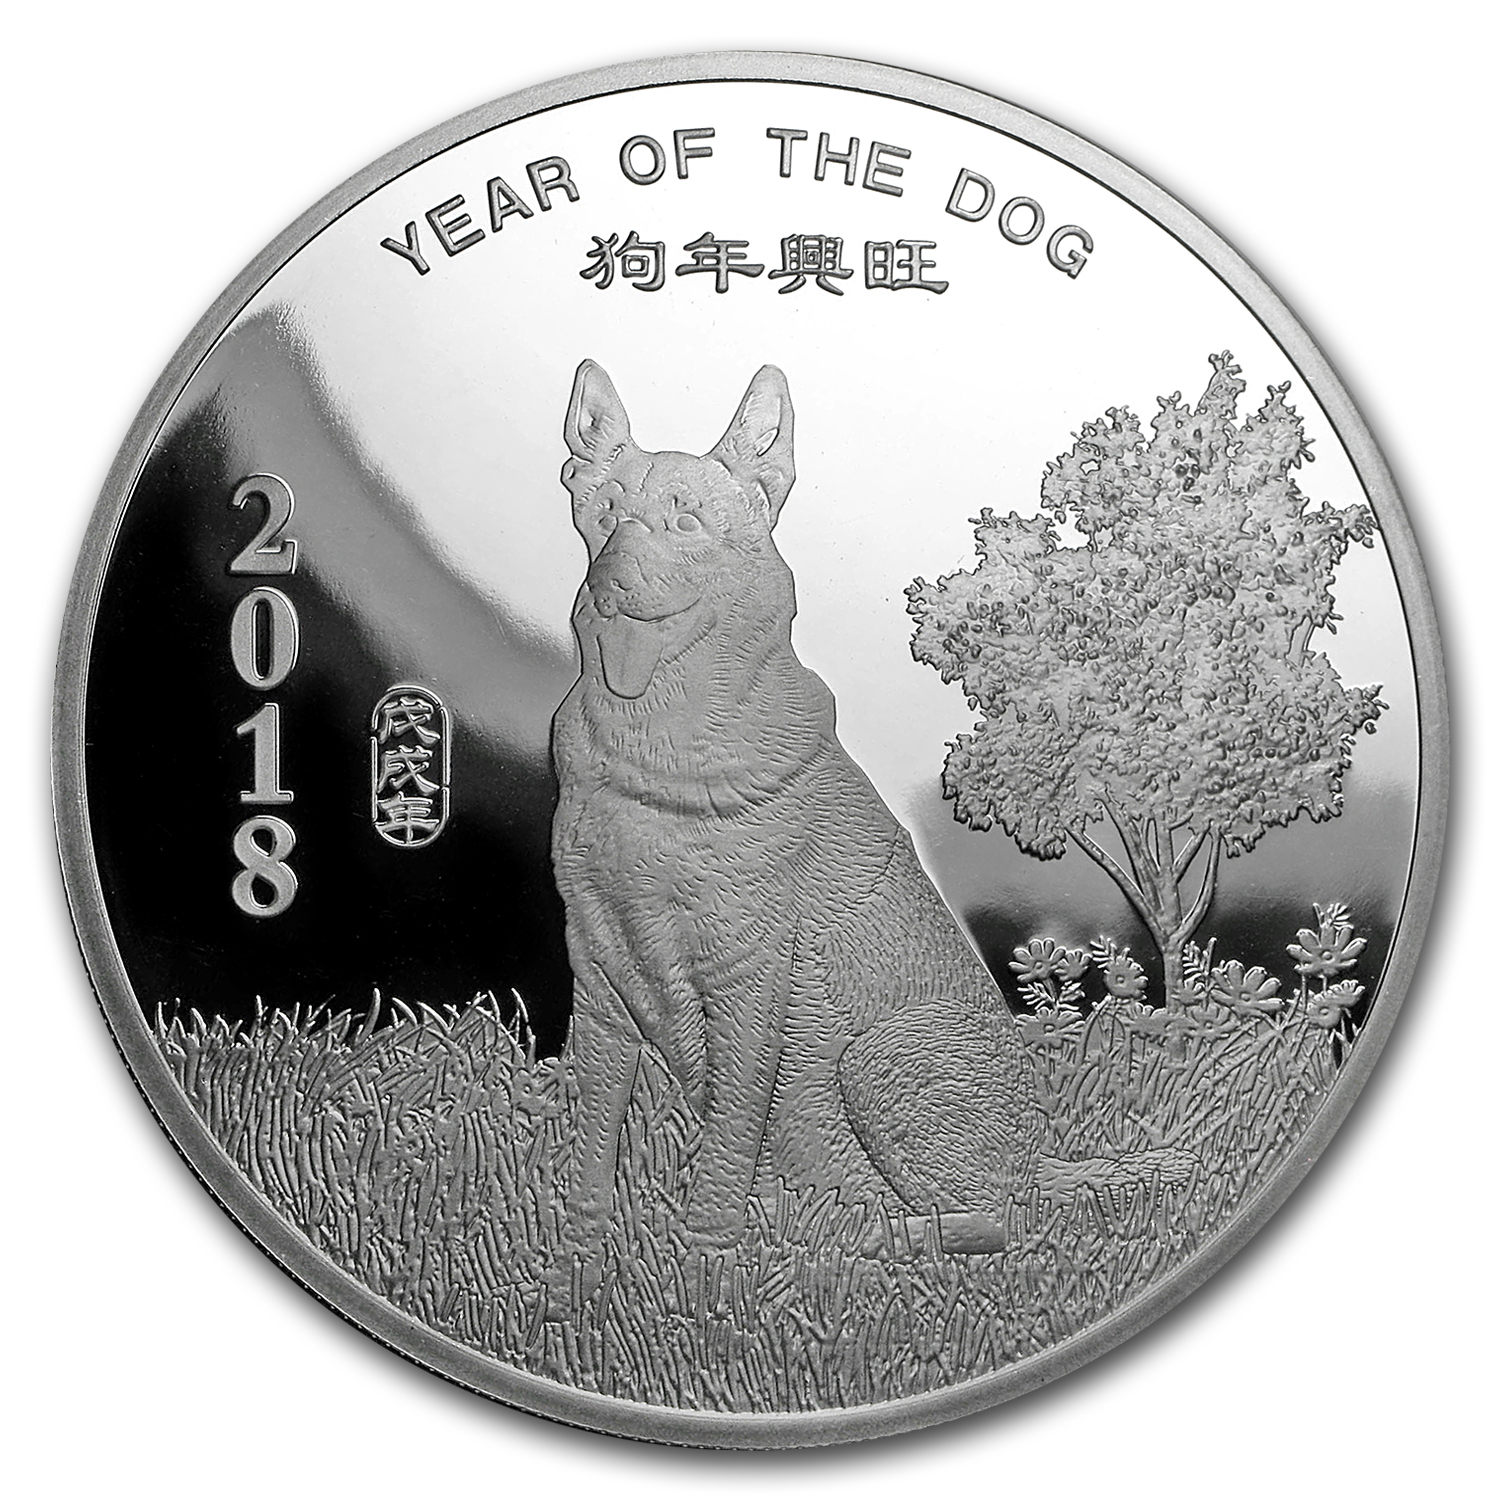 5 oz Silver Round - APMEX (2018 Year of the Dog)